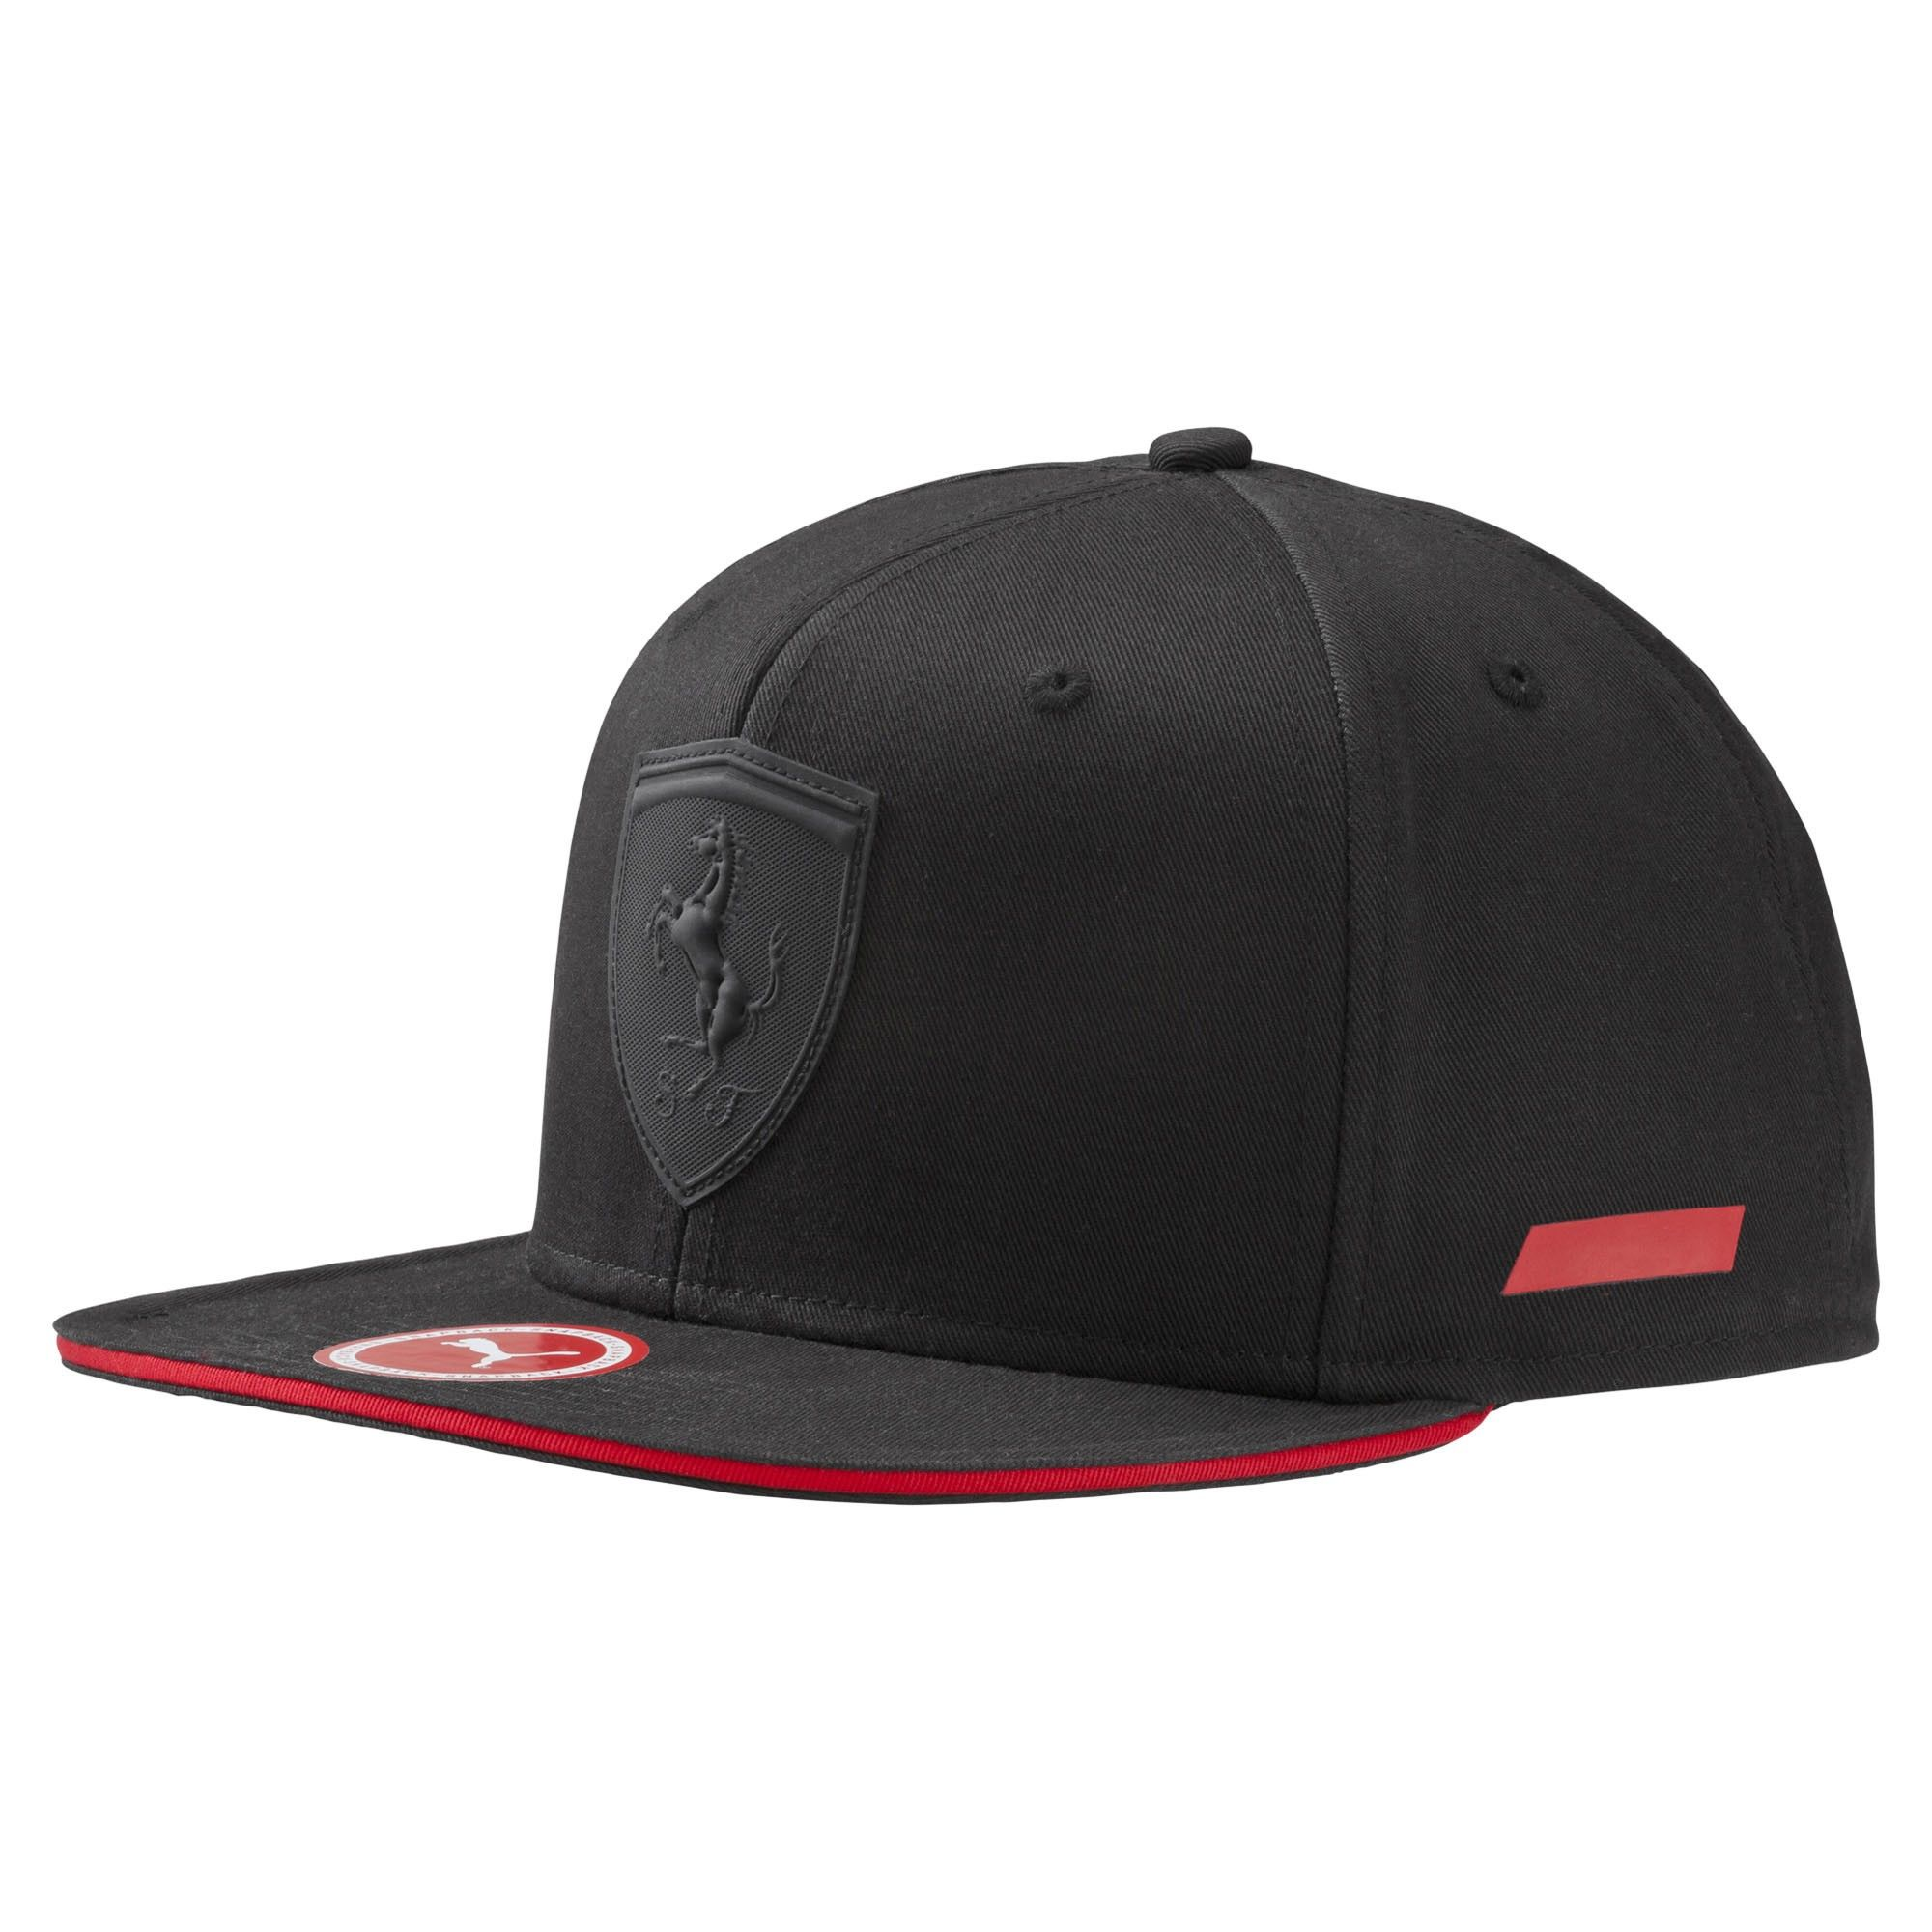 spring ferrari gray aero black suede p men women hat the snapback or puma best